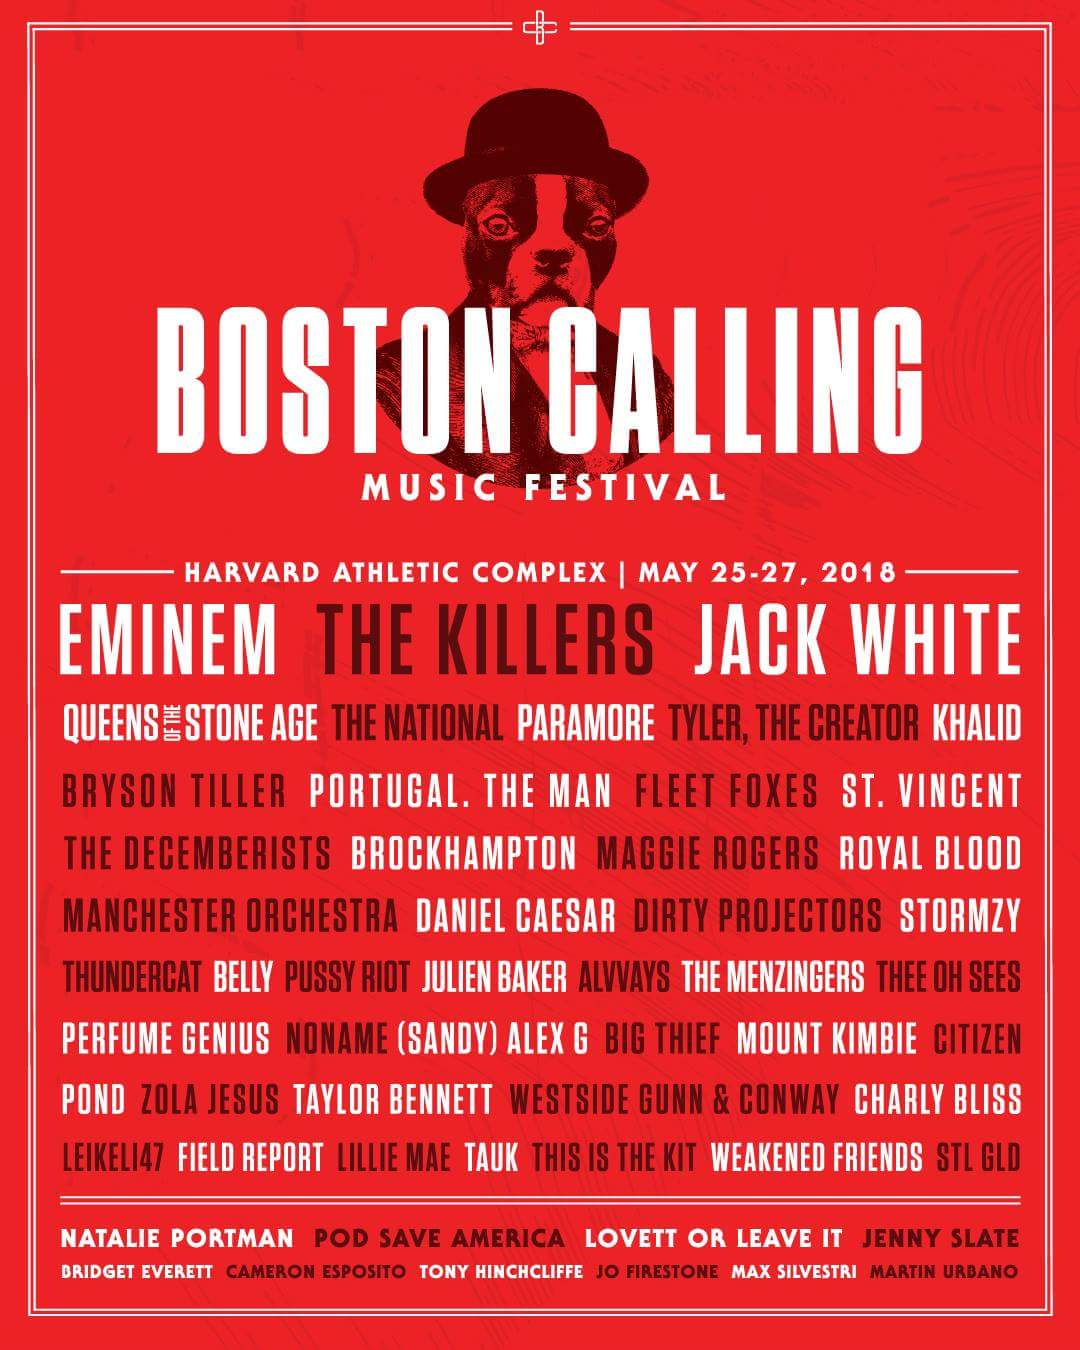 Boston Calling Music Festival 2018 at Harvard Athletic Complex - May 25th, 2018 admat lineup poster